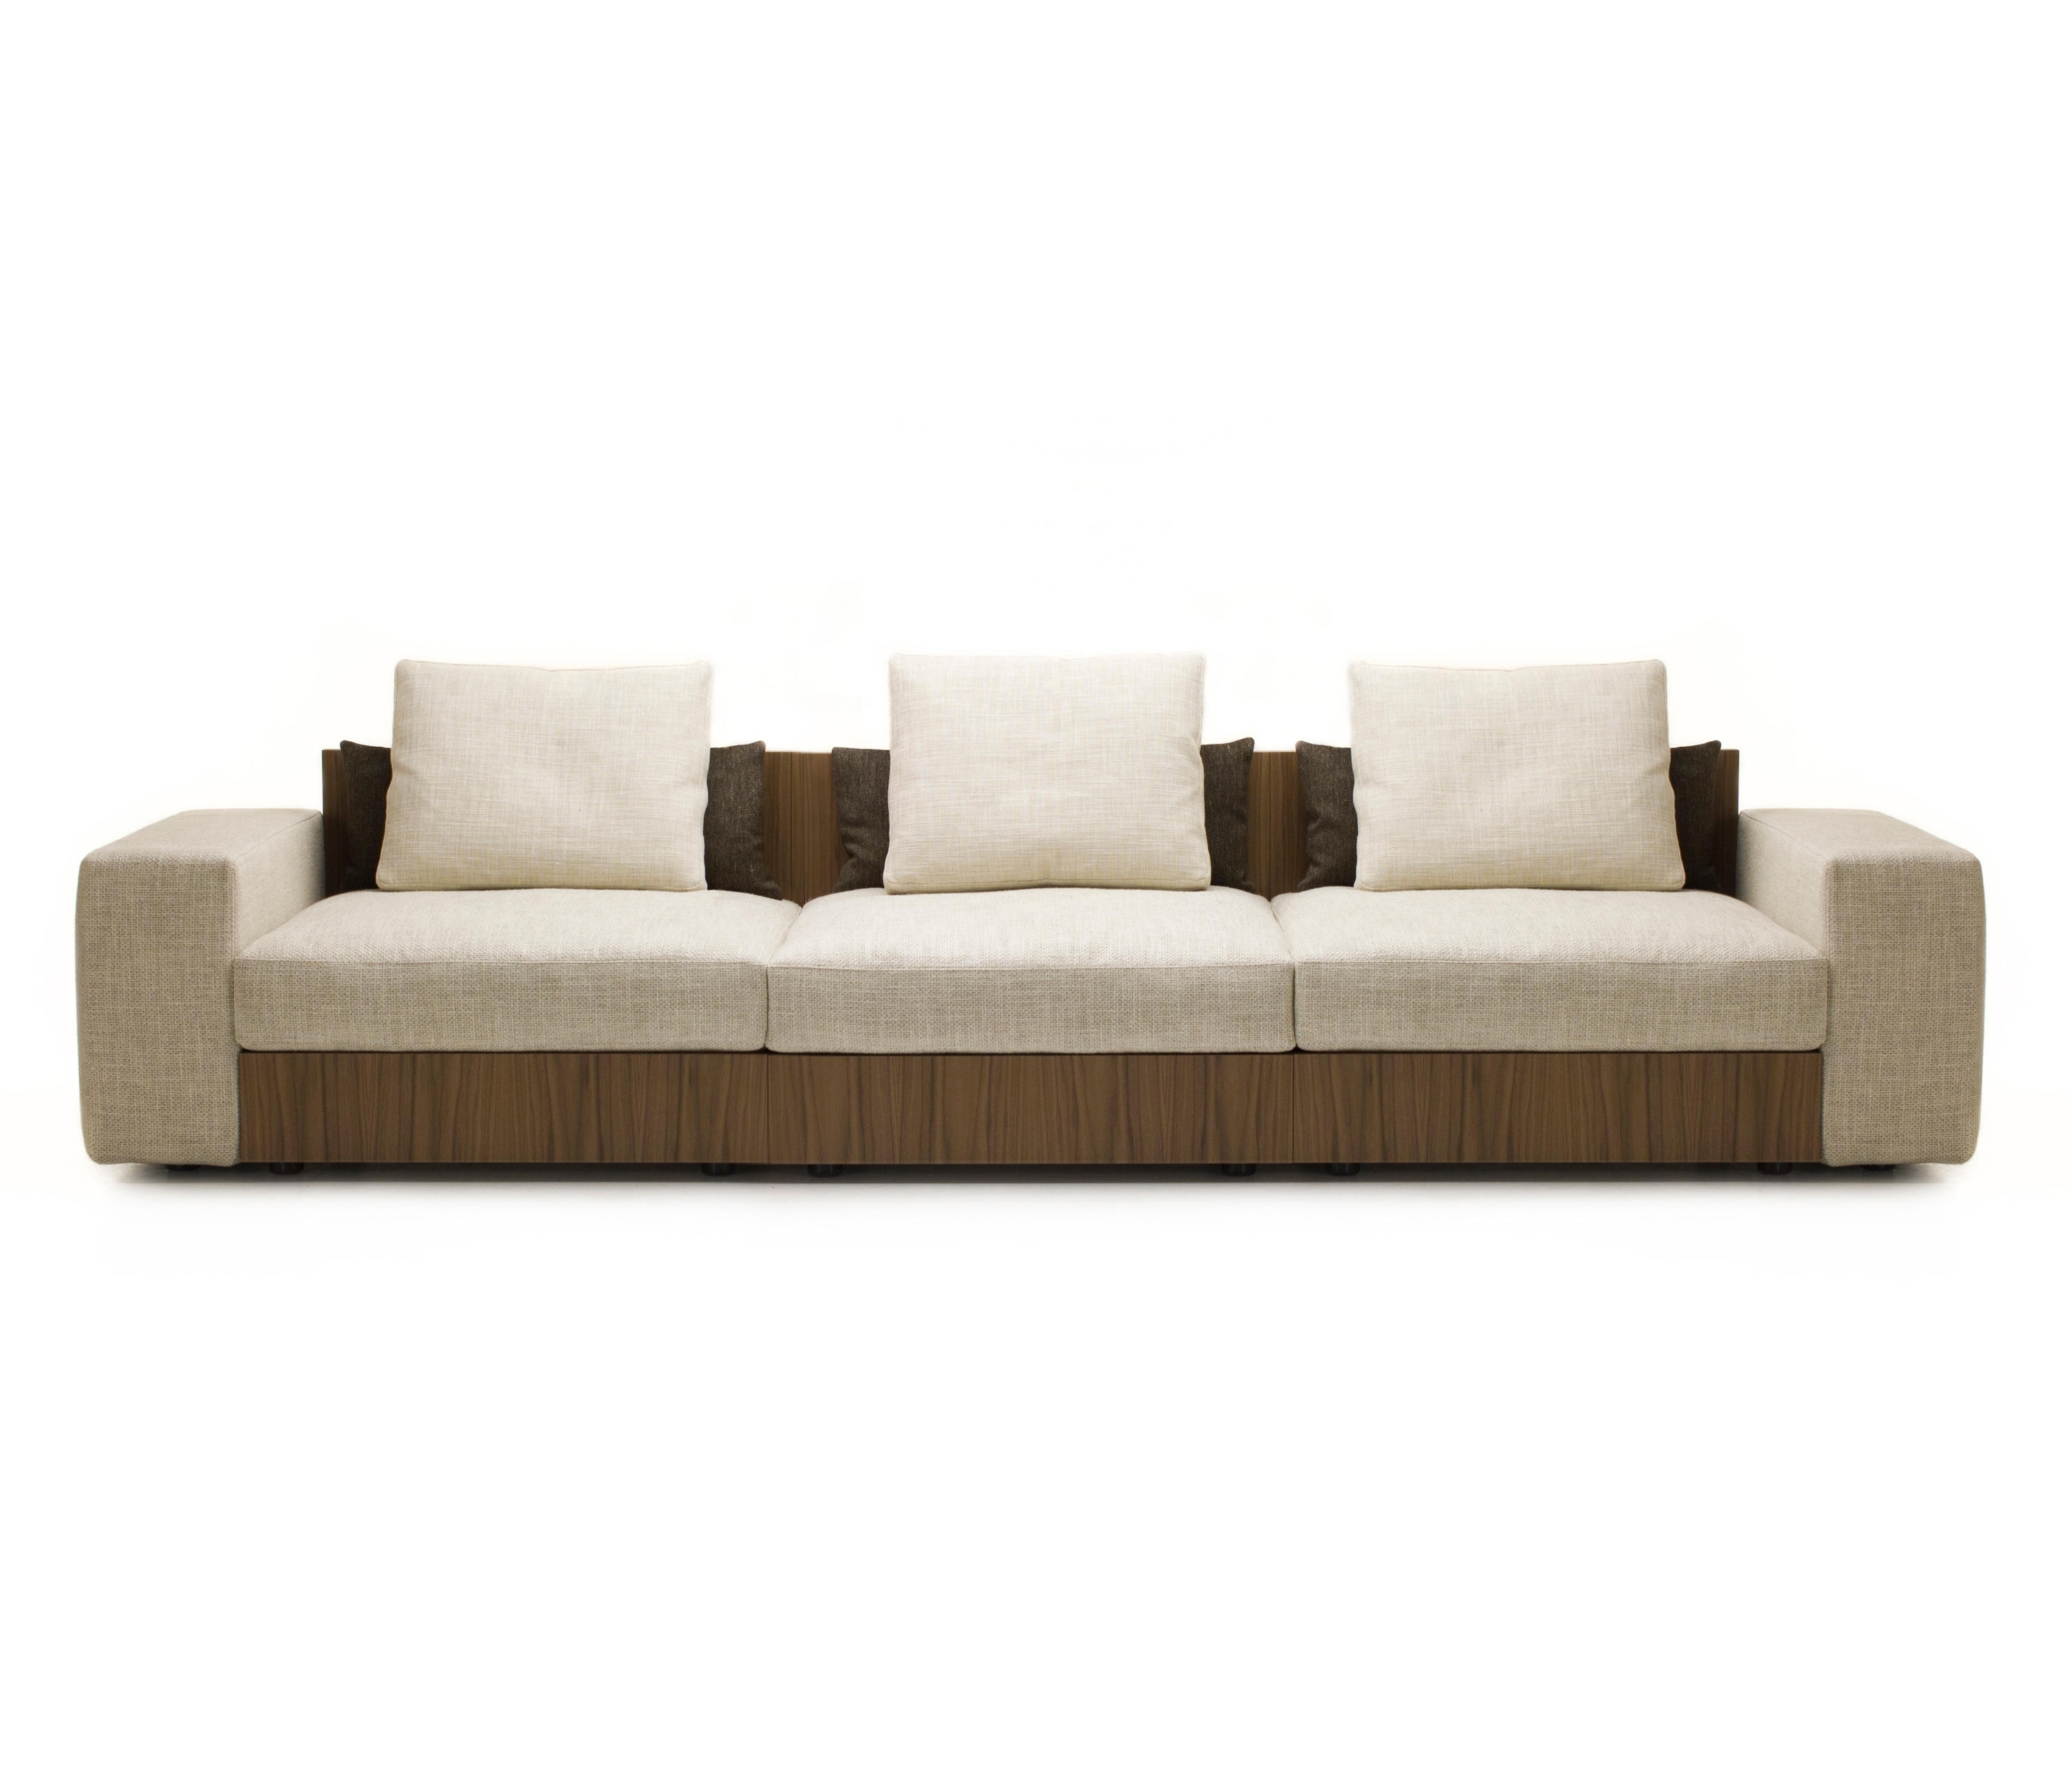 Widely Used Sofa So Wood (View 20 of 20)